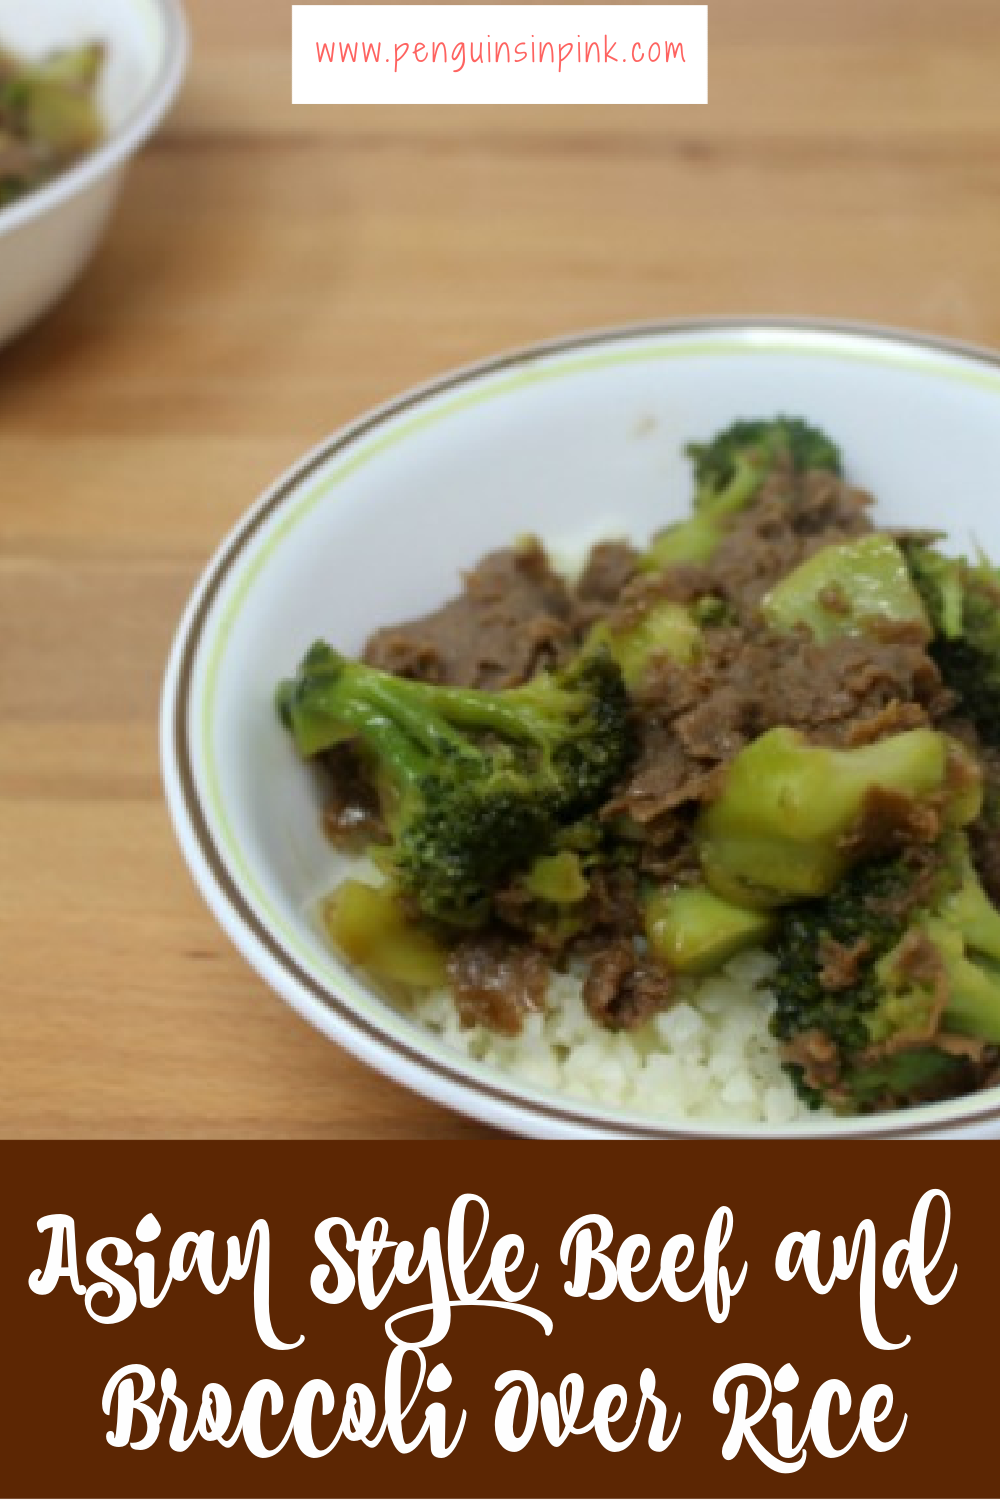 Flavorful and quick cooking Asian Style Beef and Broccoli over Rice is sure to be a family favorite. Serve it over white rice, brown rice, or cauliflower rice for a fast and healthier dinner.